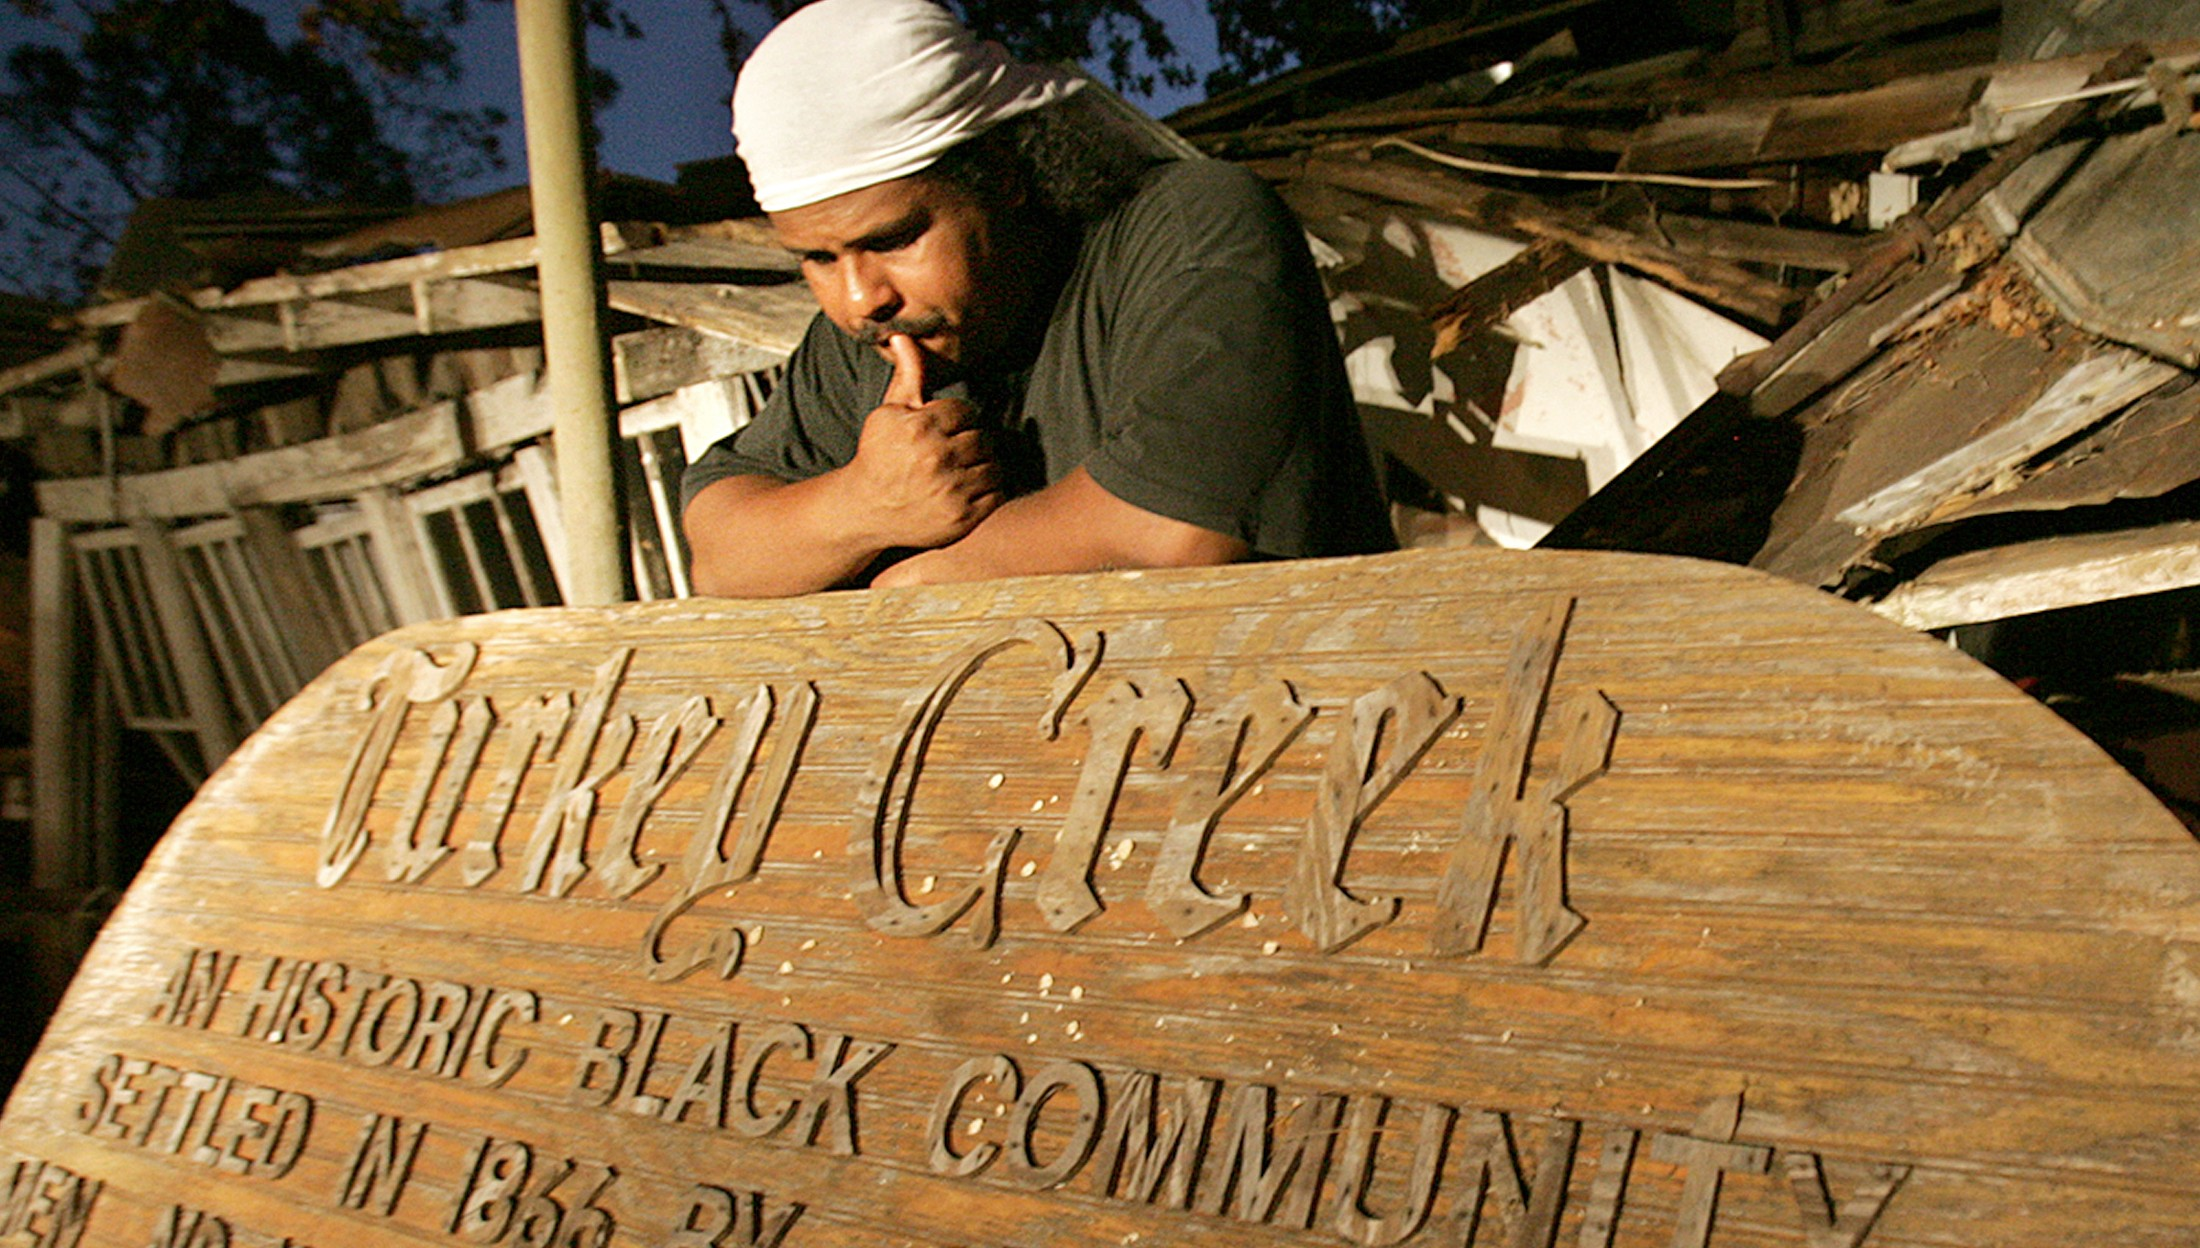 Derrick Evens with the Turkey Creek Historic Community Sign